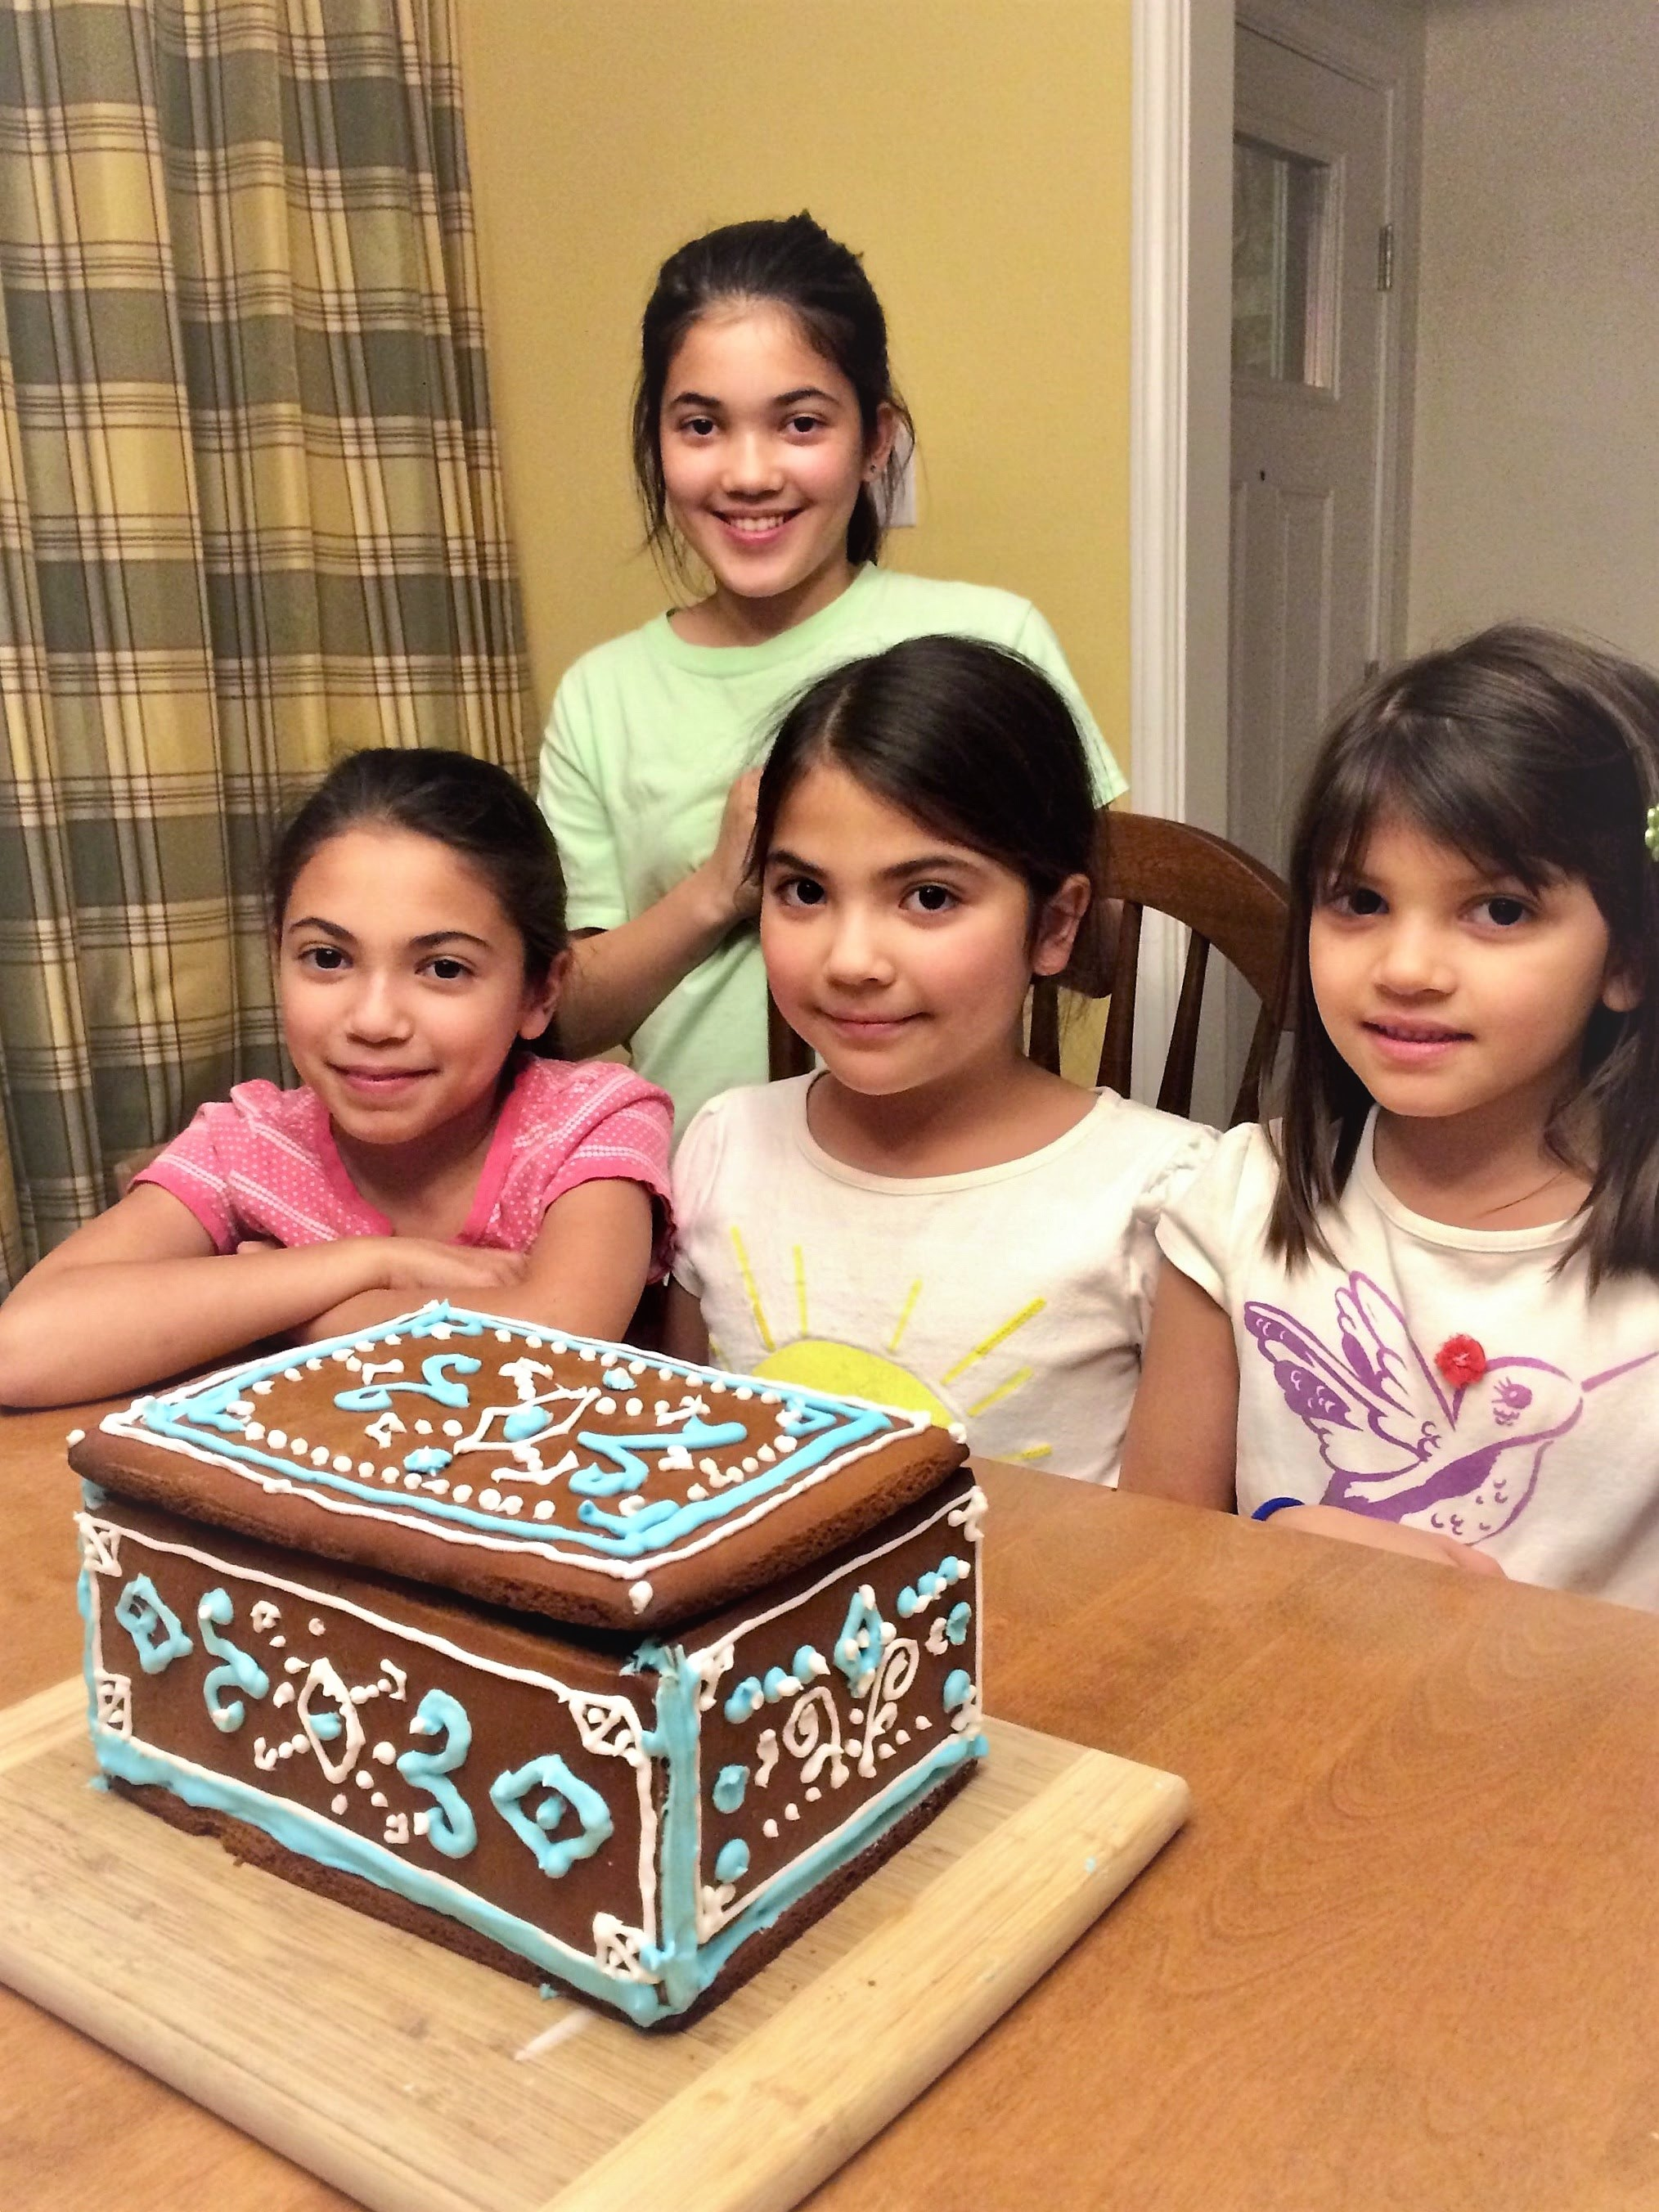 Blubaugh sisters gingerbread box.jpg